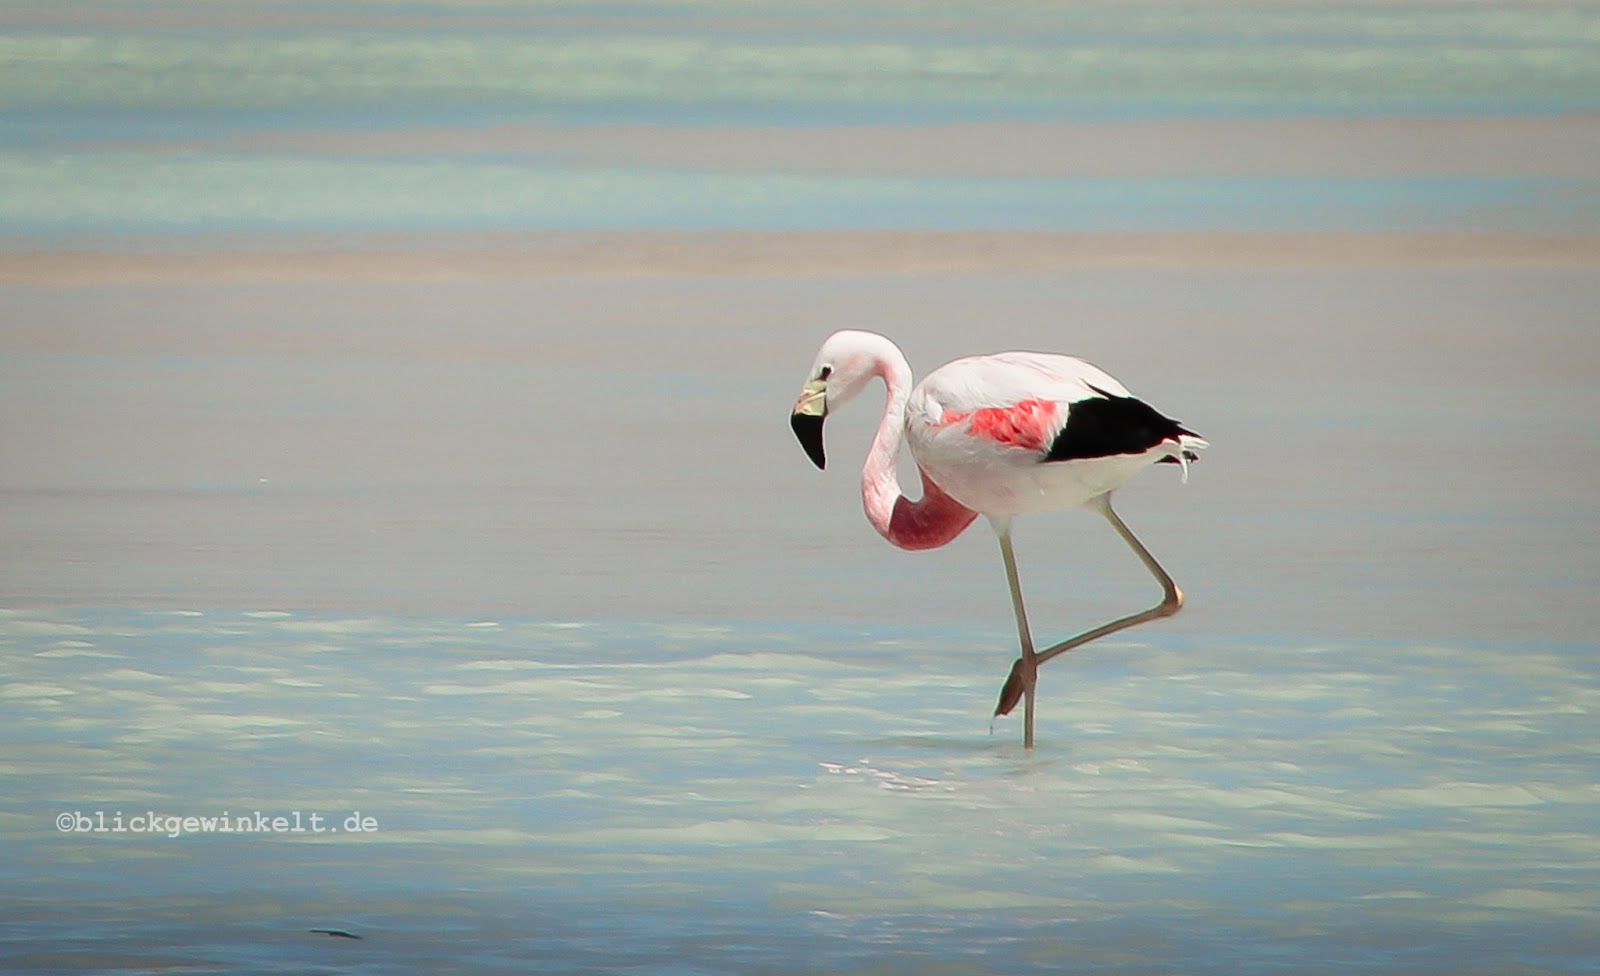 Flamingo, Chile, Atacama